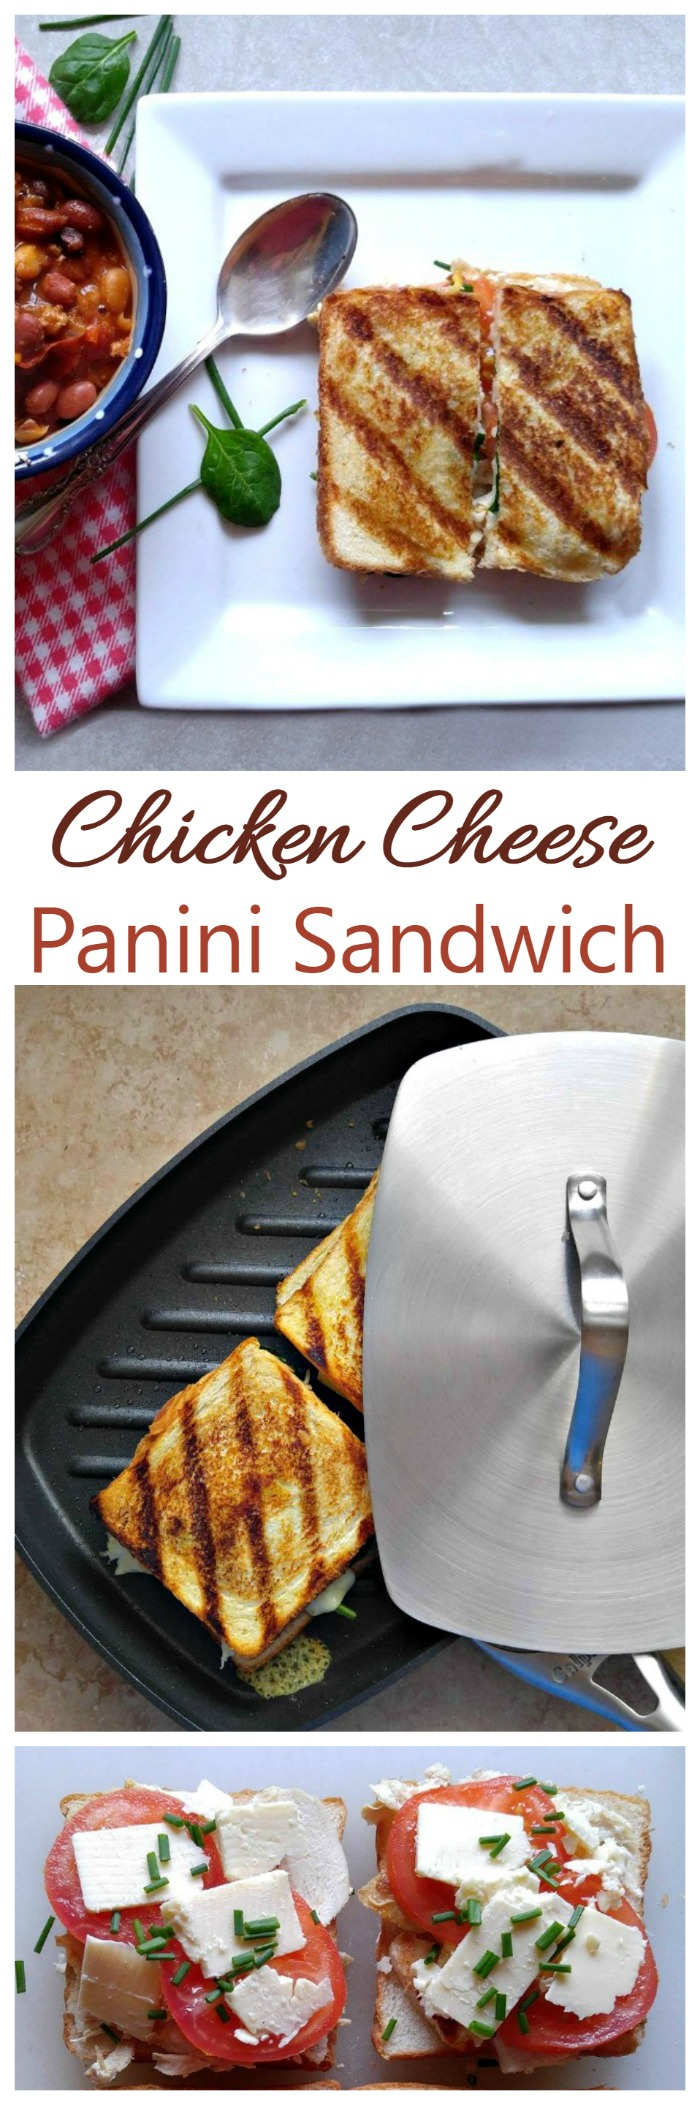 Chicken Cheese Panini Sandwich - Slimmed Down Lunch Delight